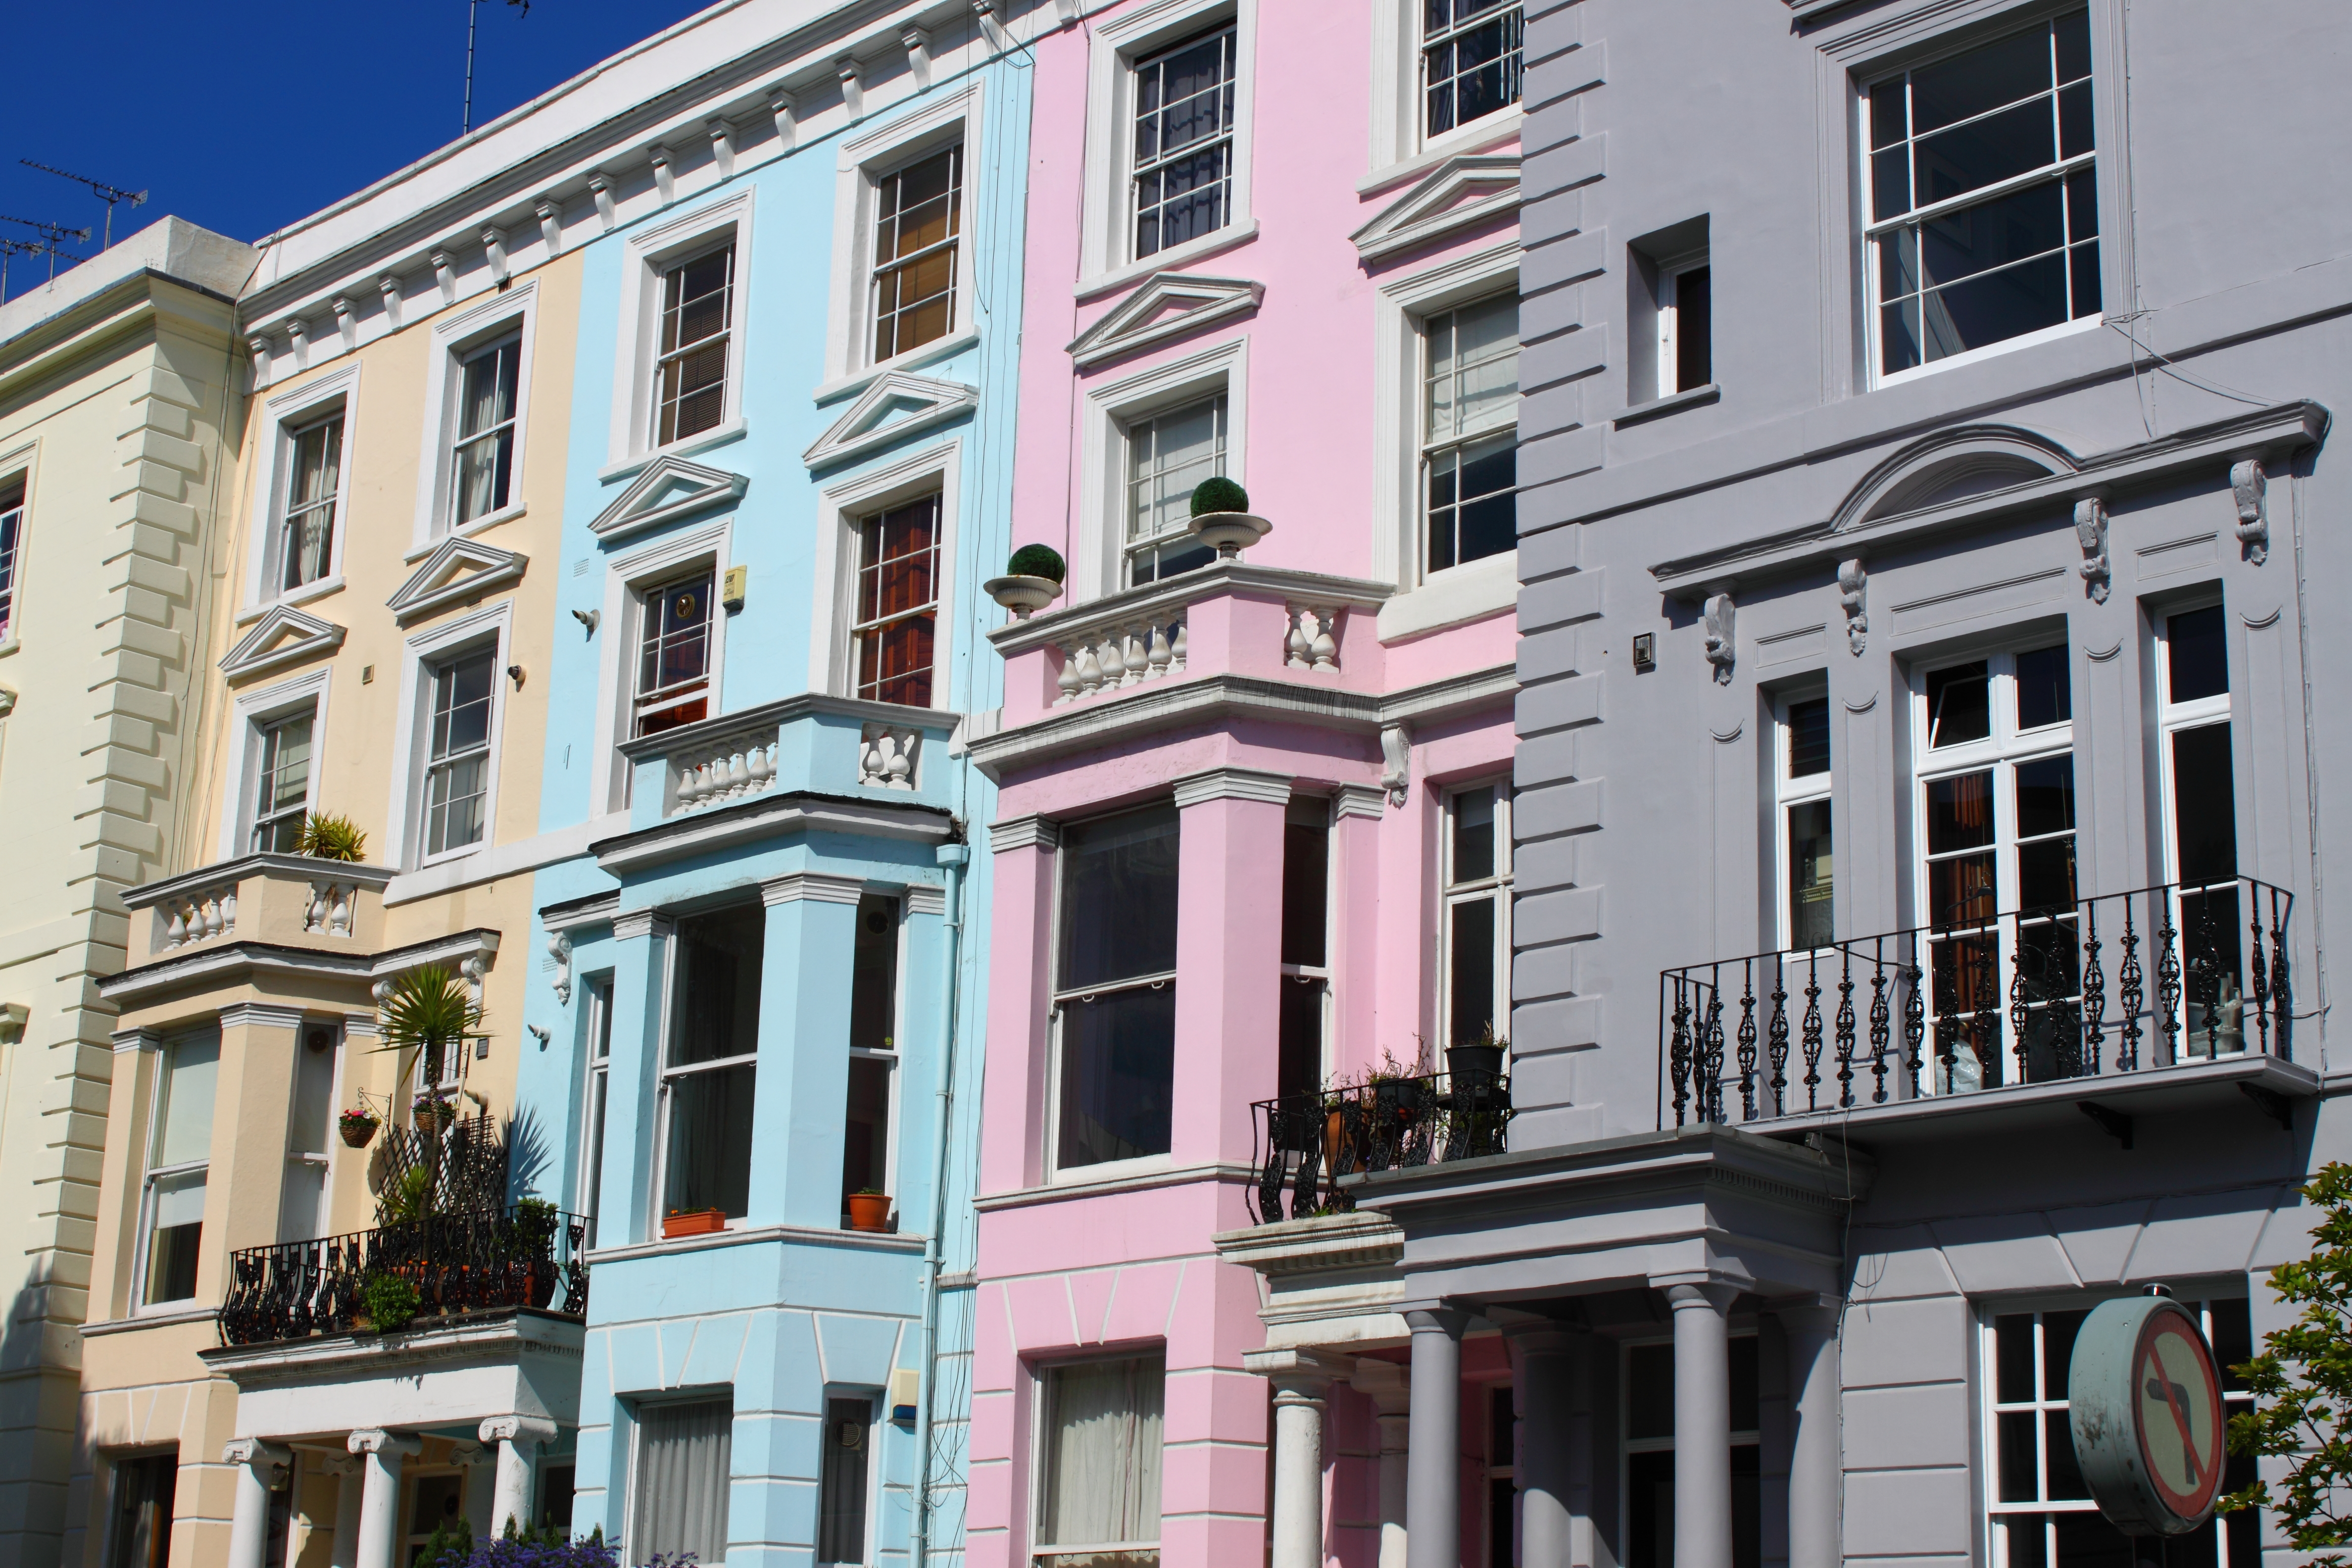 Top Ten Things to See and Do in Notting Hill - Londontopia